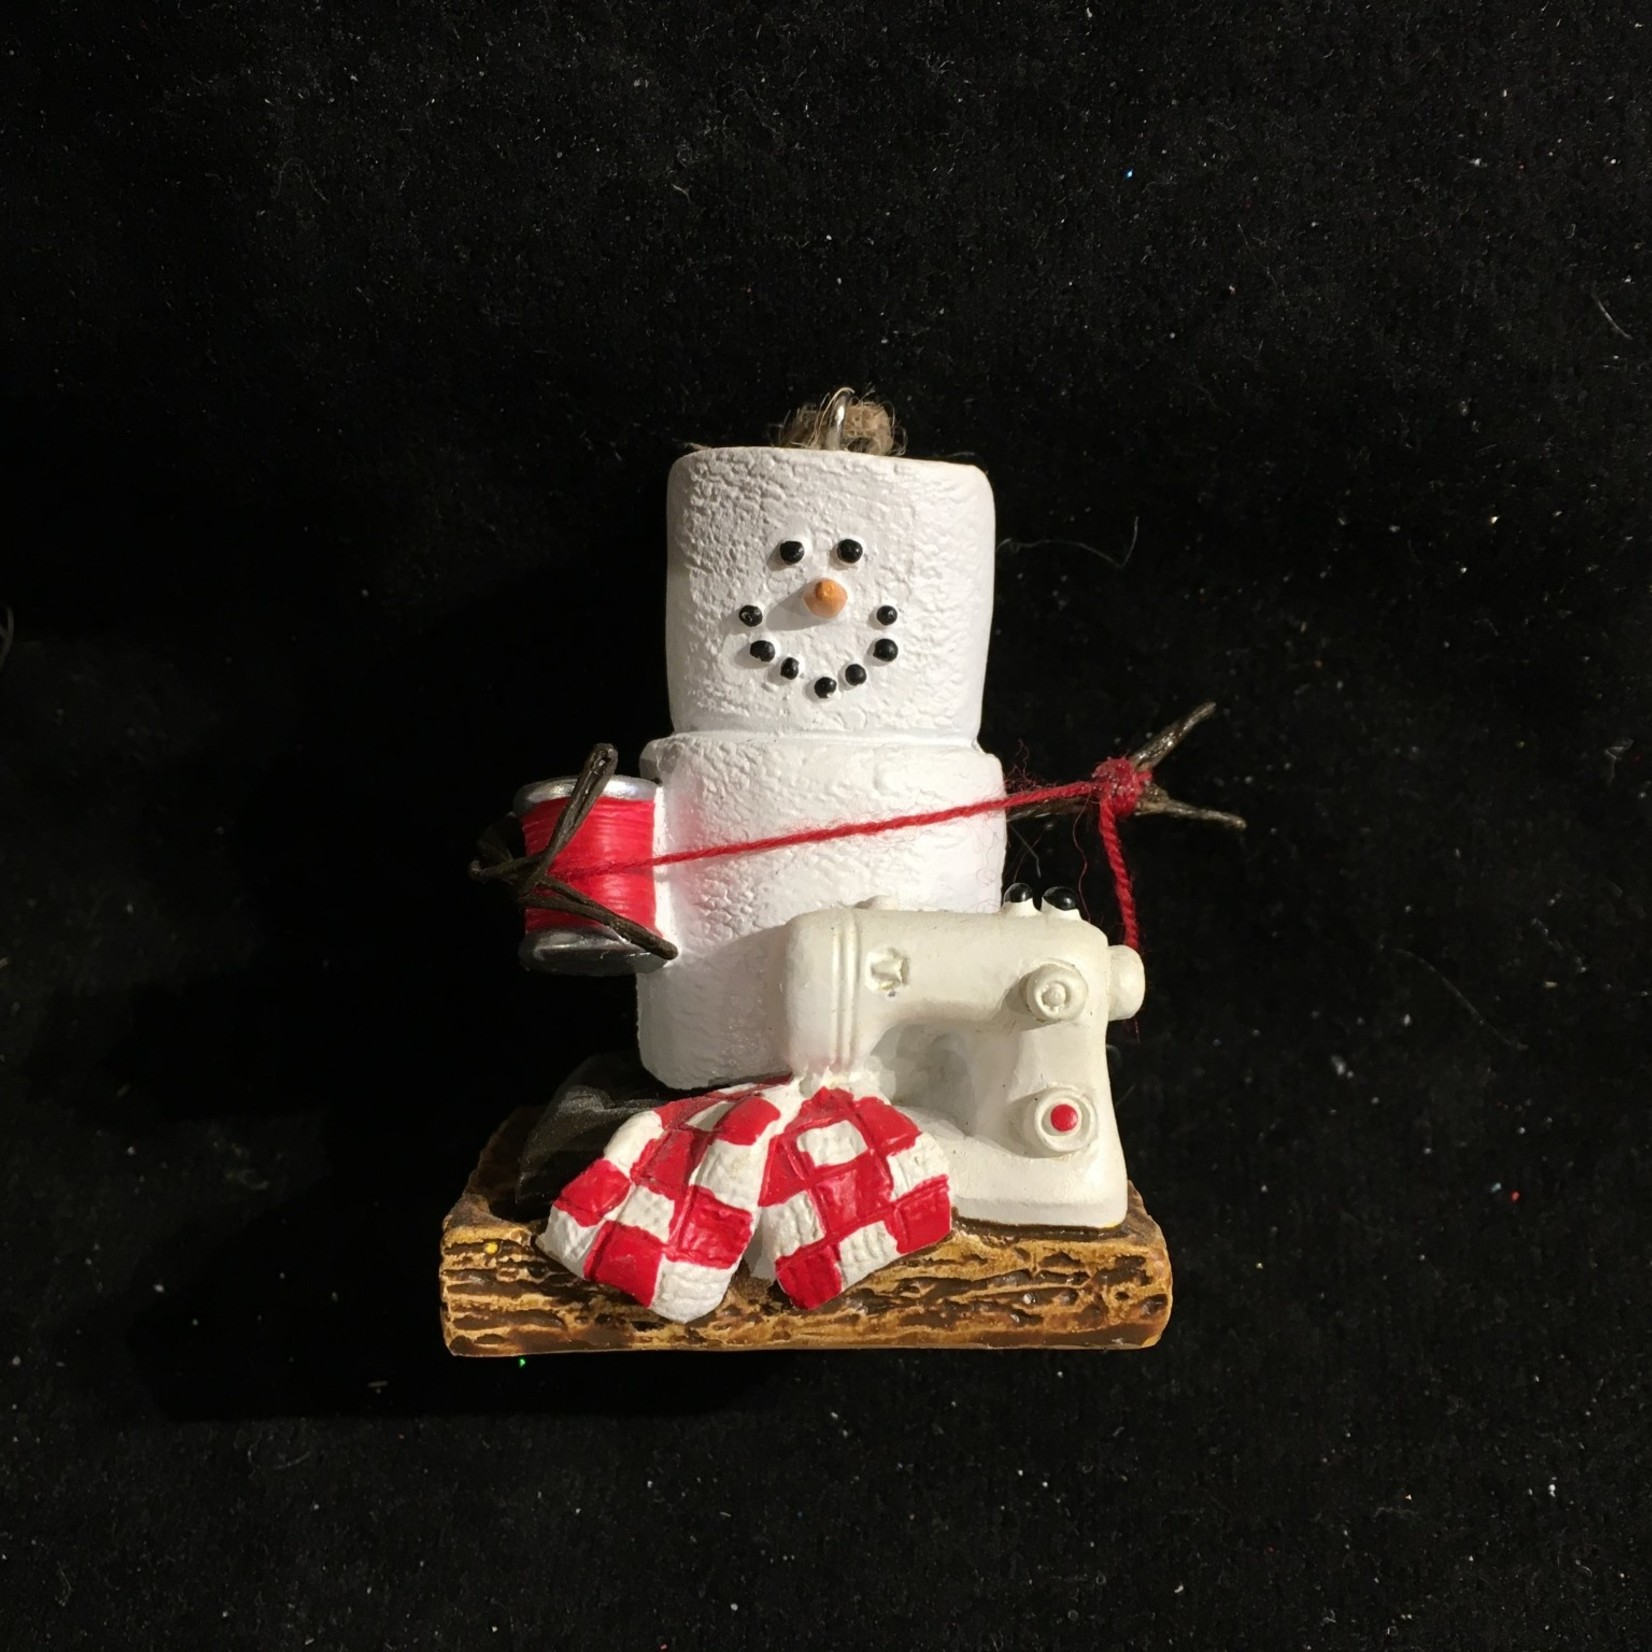 **S'Mores Crafting